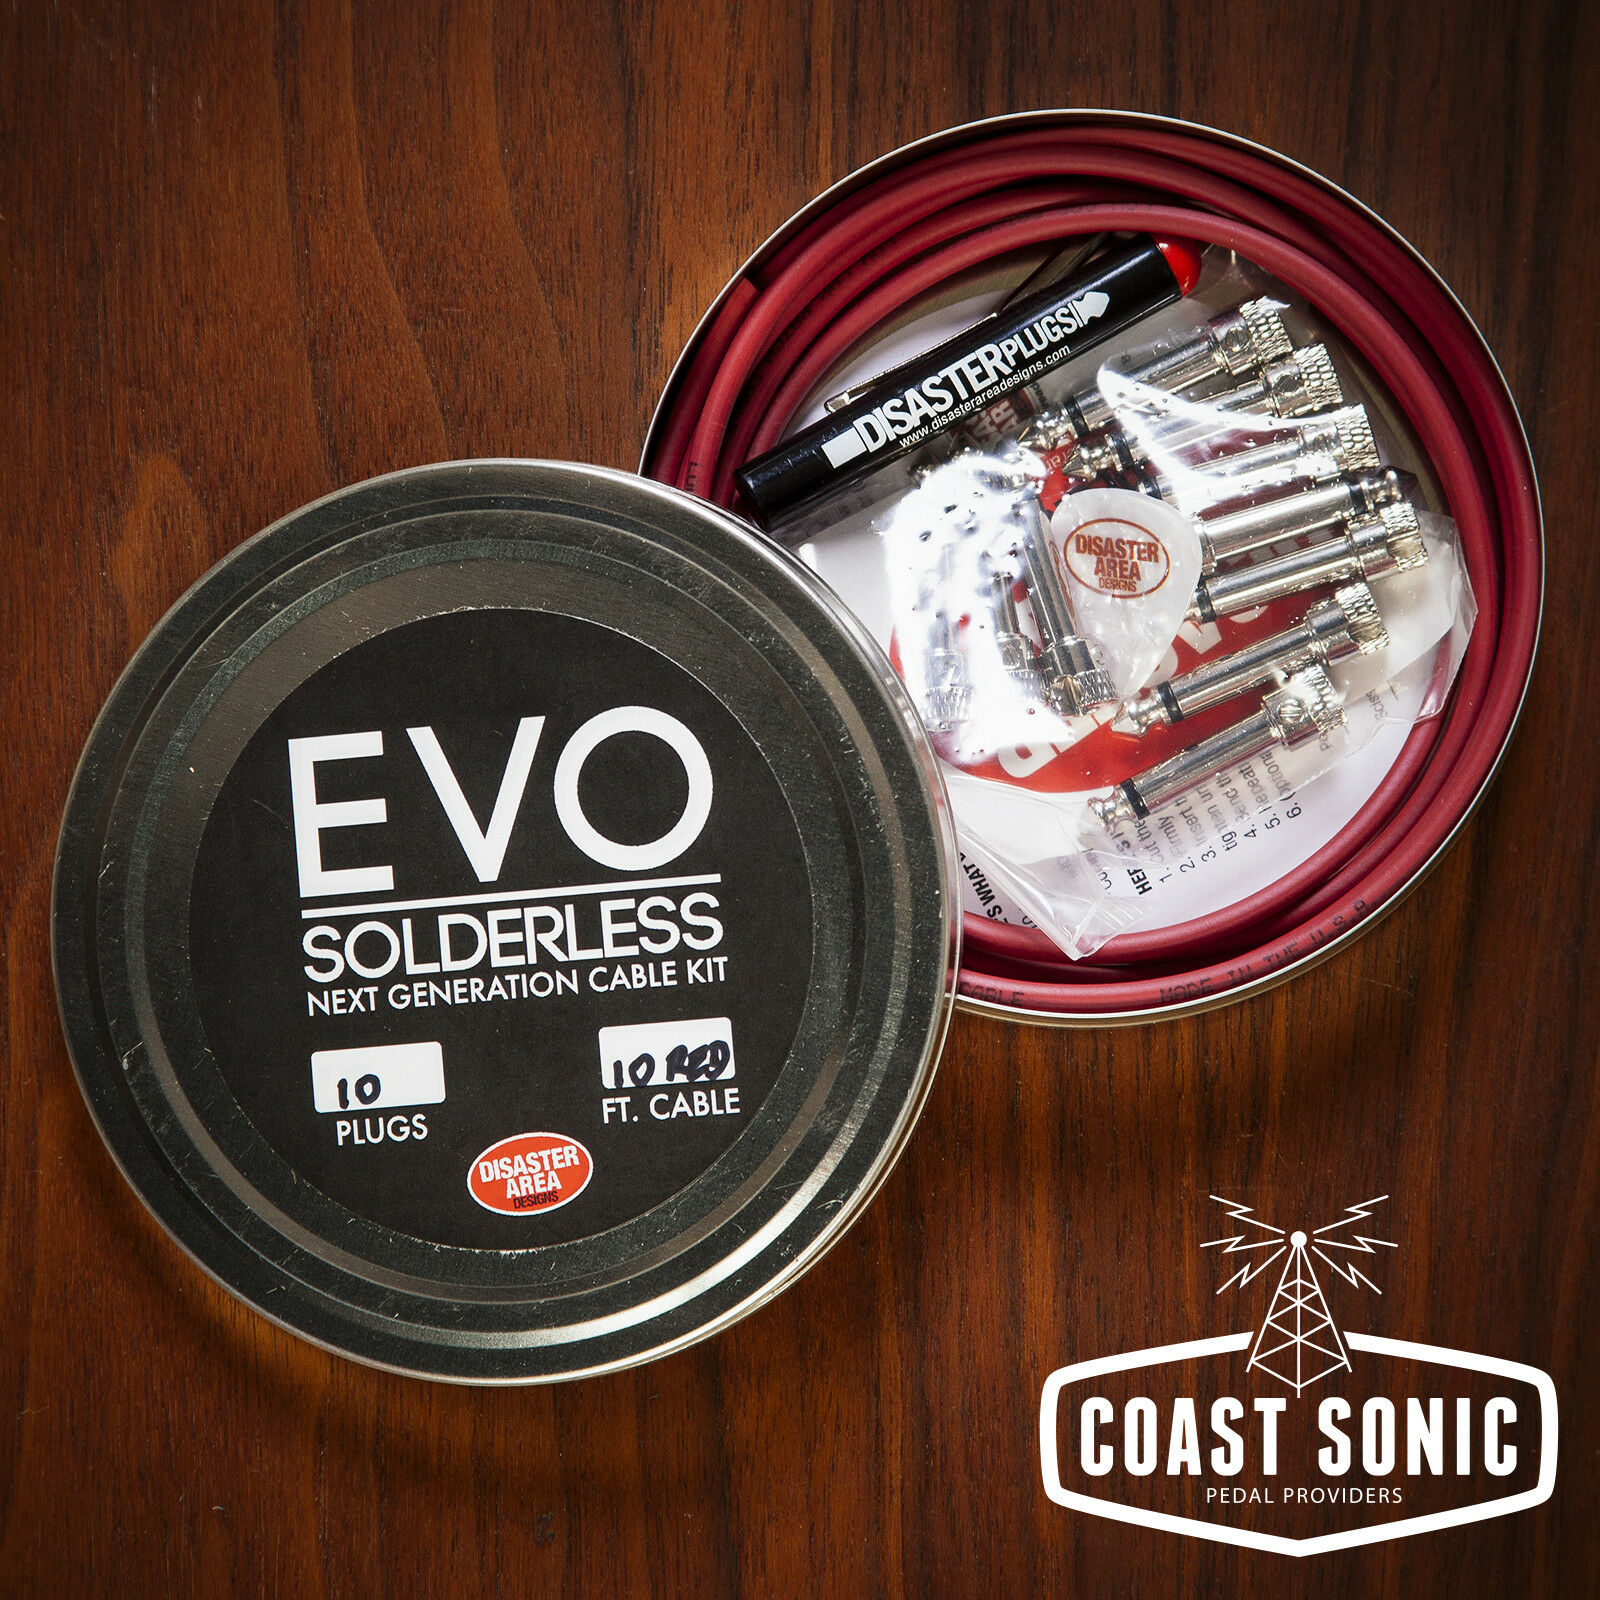 Disaster Area EVO Solderless Cable Kit 10 plugs (rot)